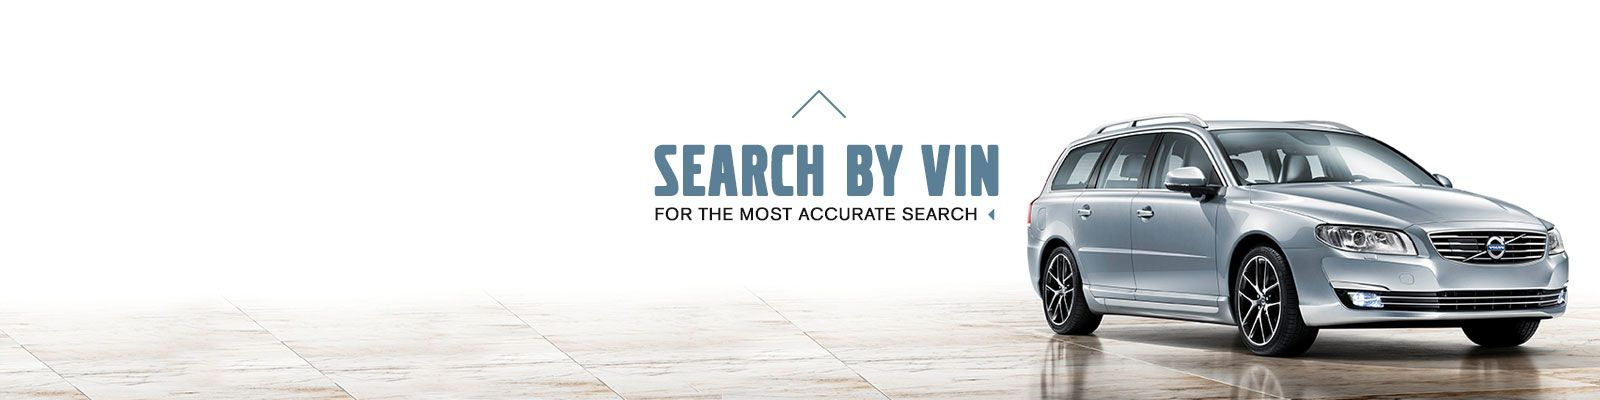 Search by VIN